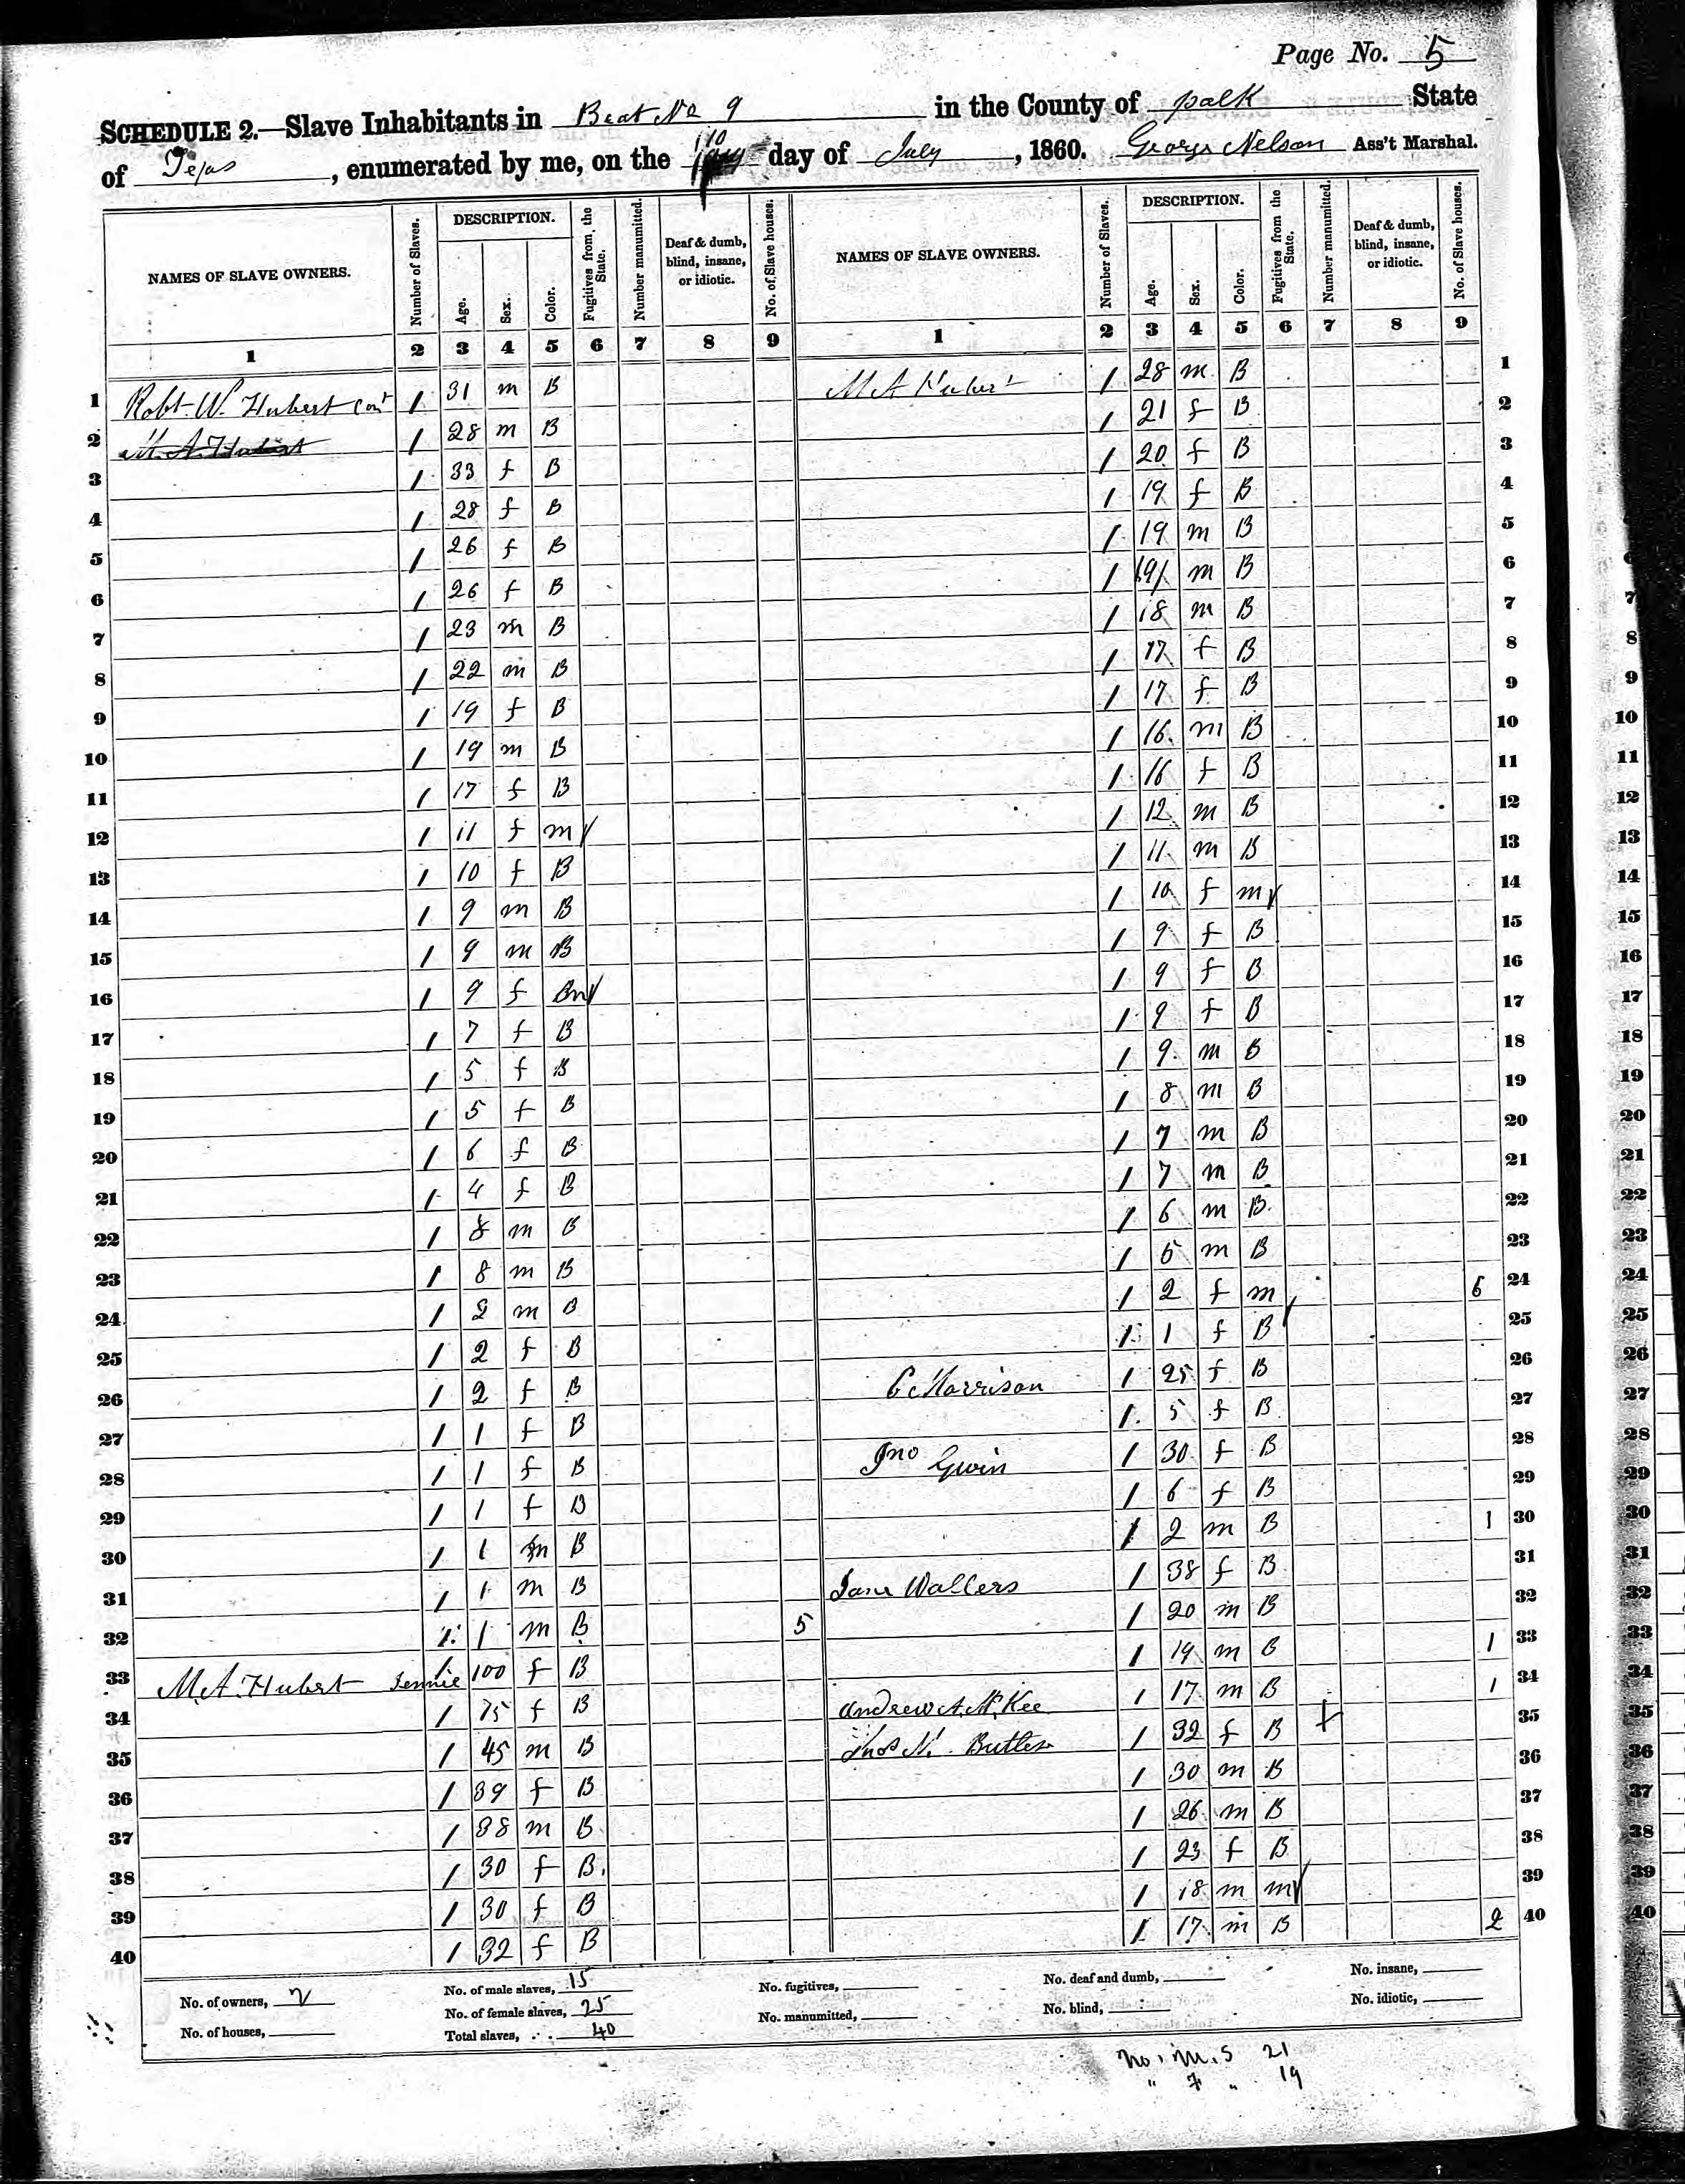 RWH slave schedule 1860 page s.jpg